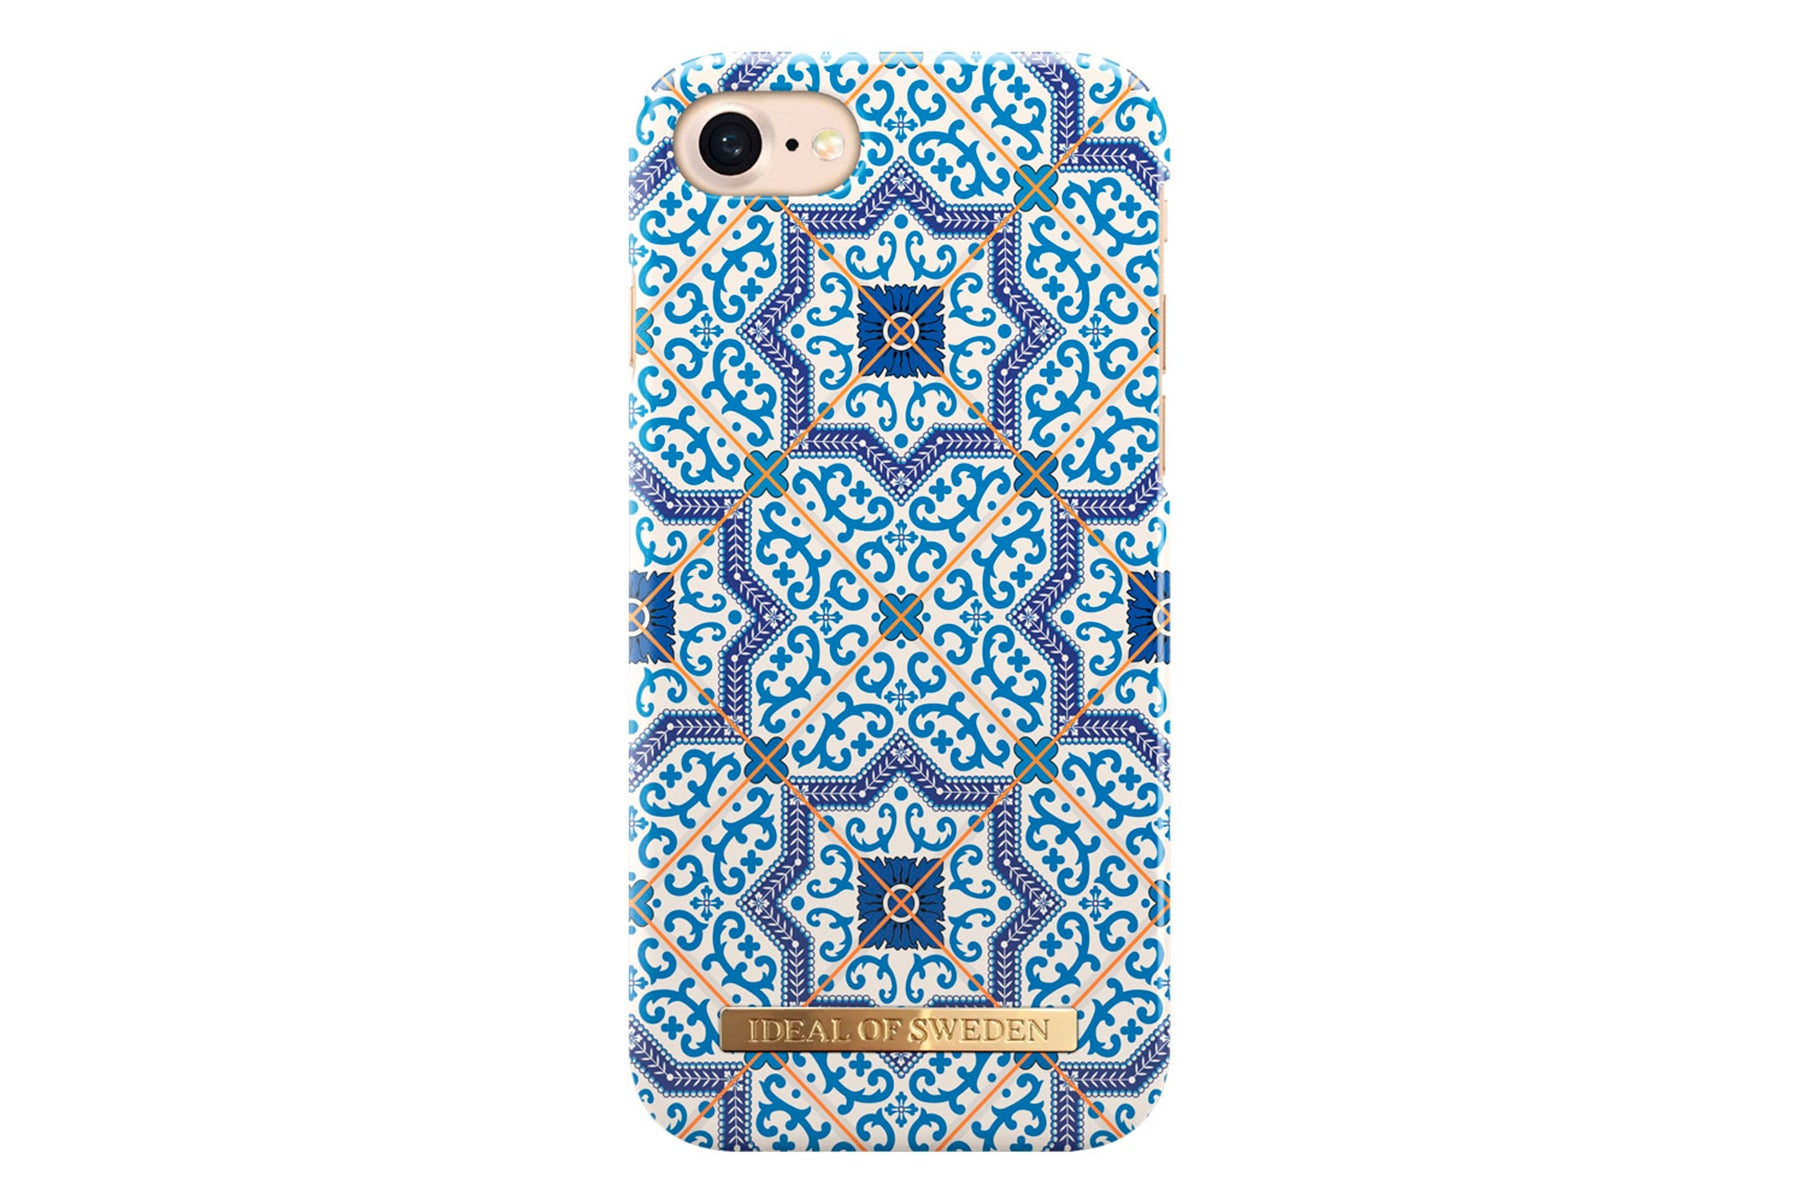 Ideal marrakech iphone 6/6s/7/8 fra ideal of sweden fra coverme